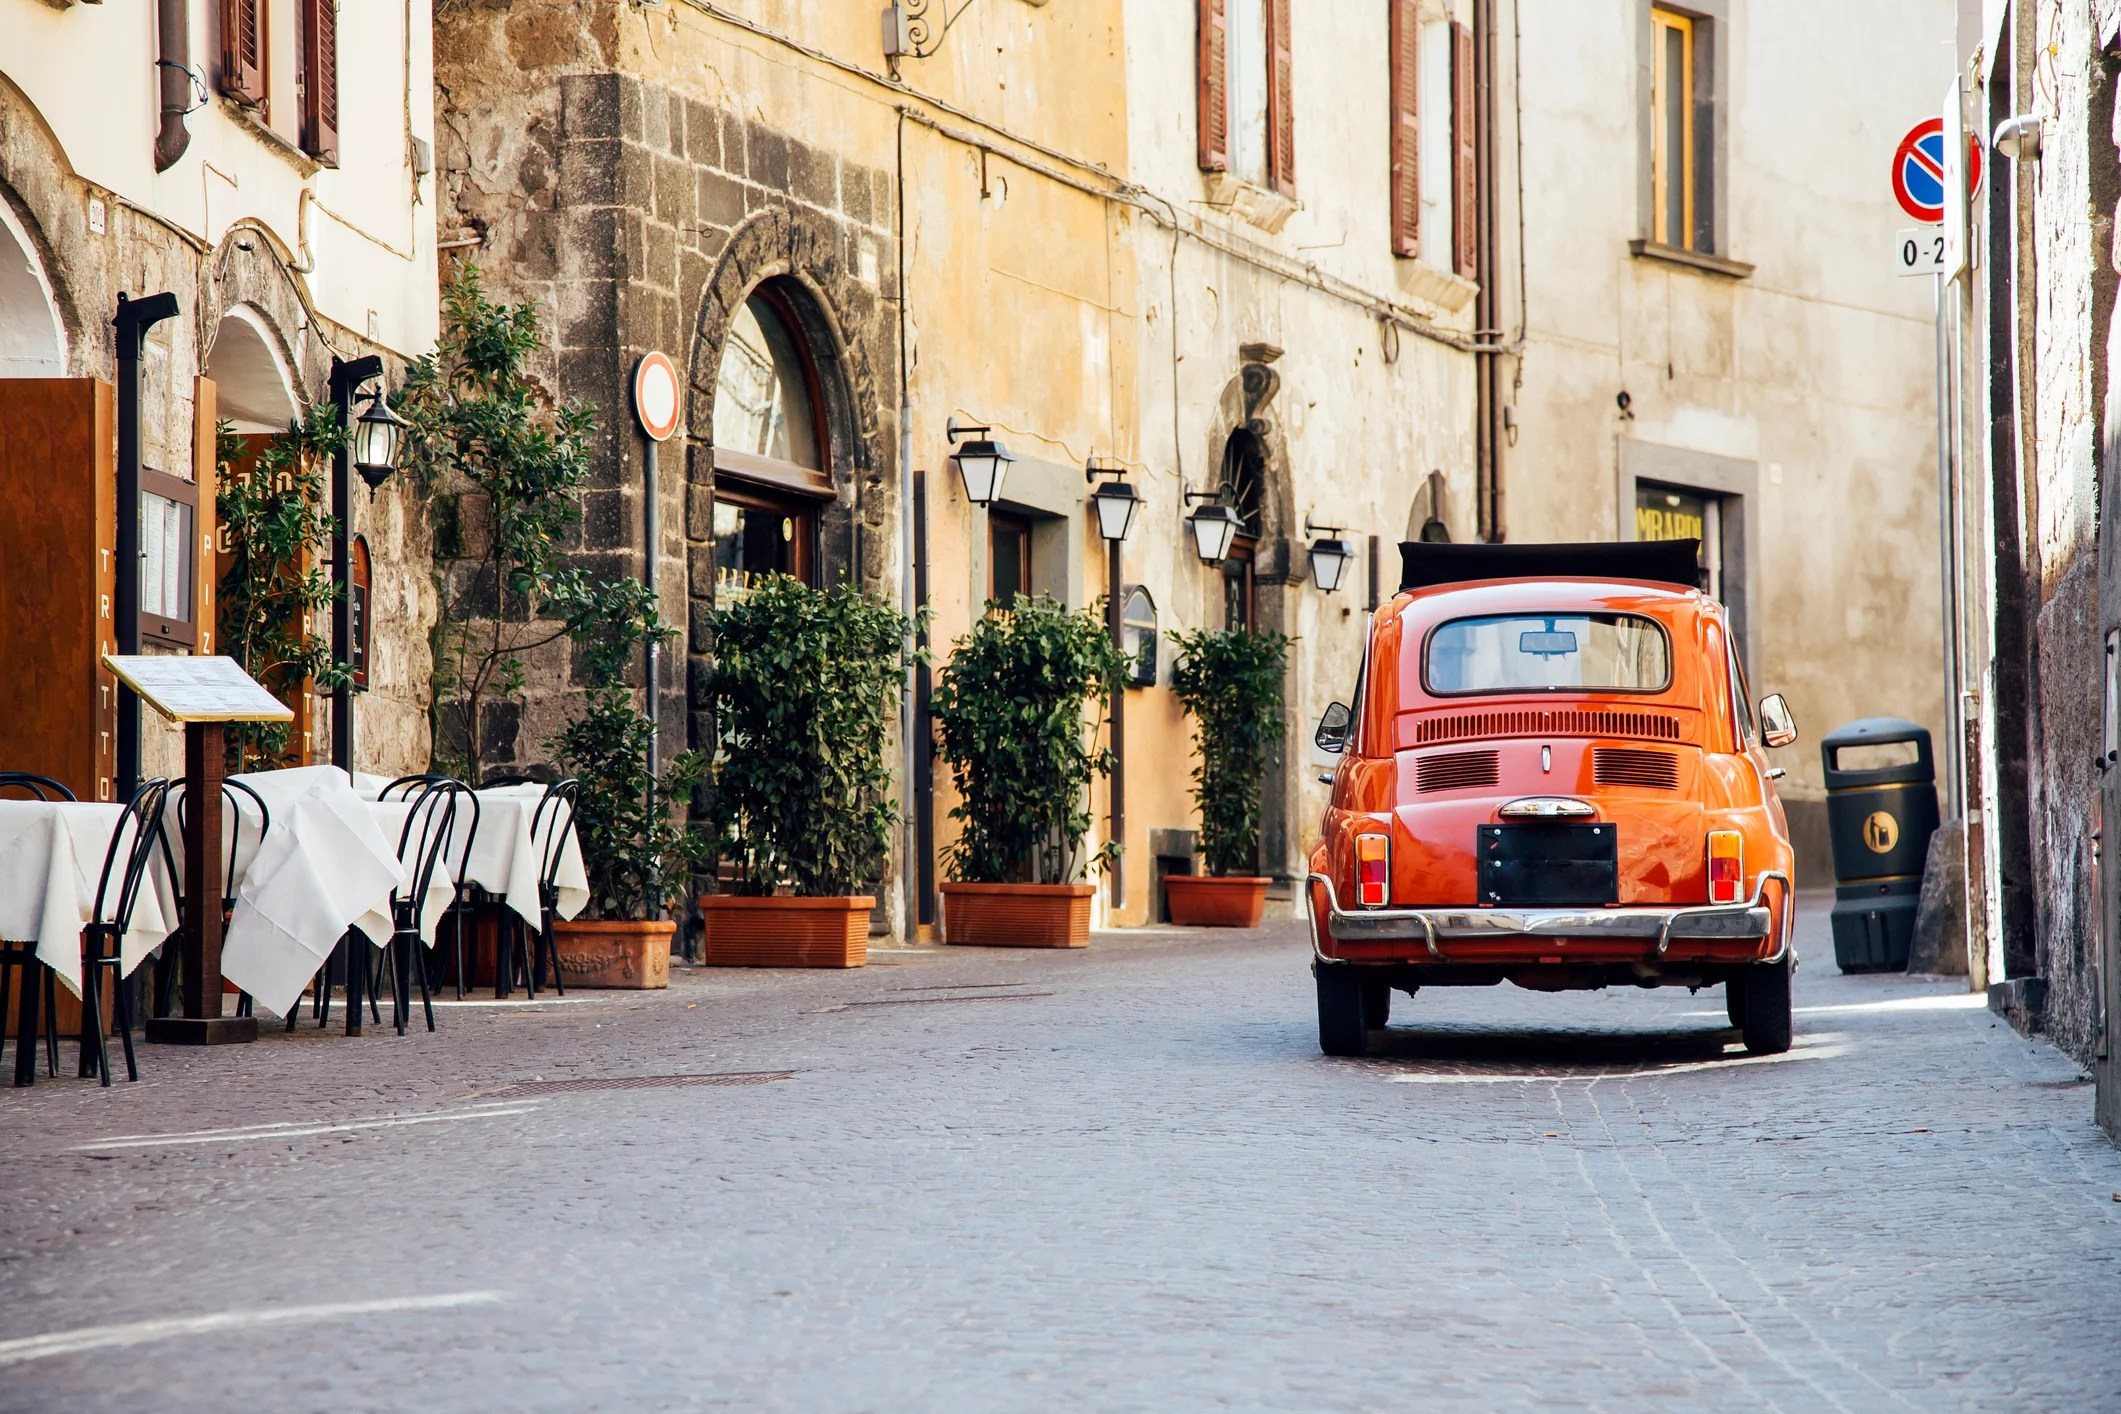 Deal Alert: US to Italy on Full-Service Airlines From $341 Round-Trip